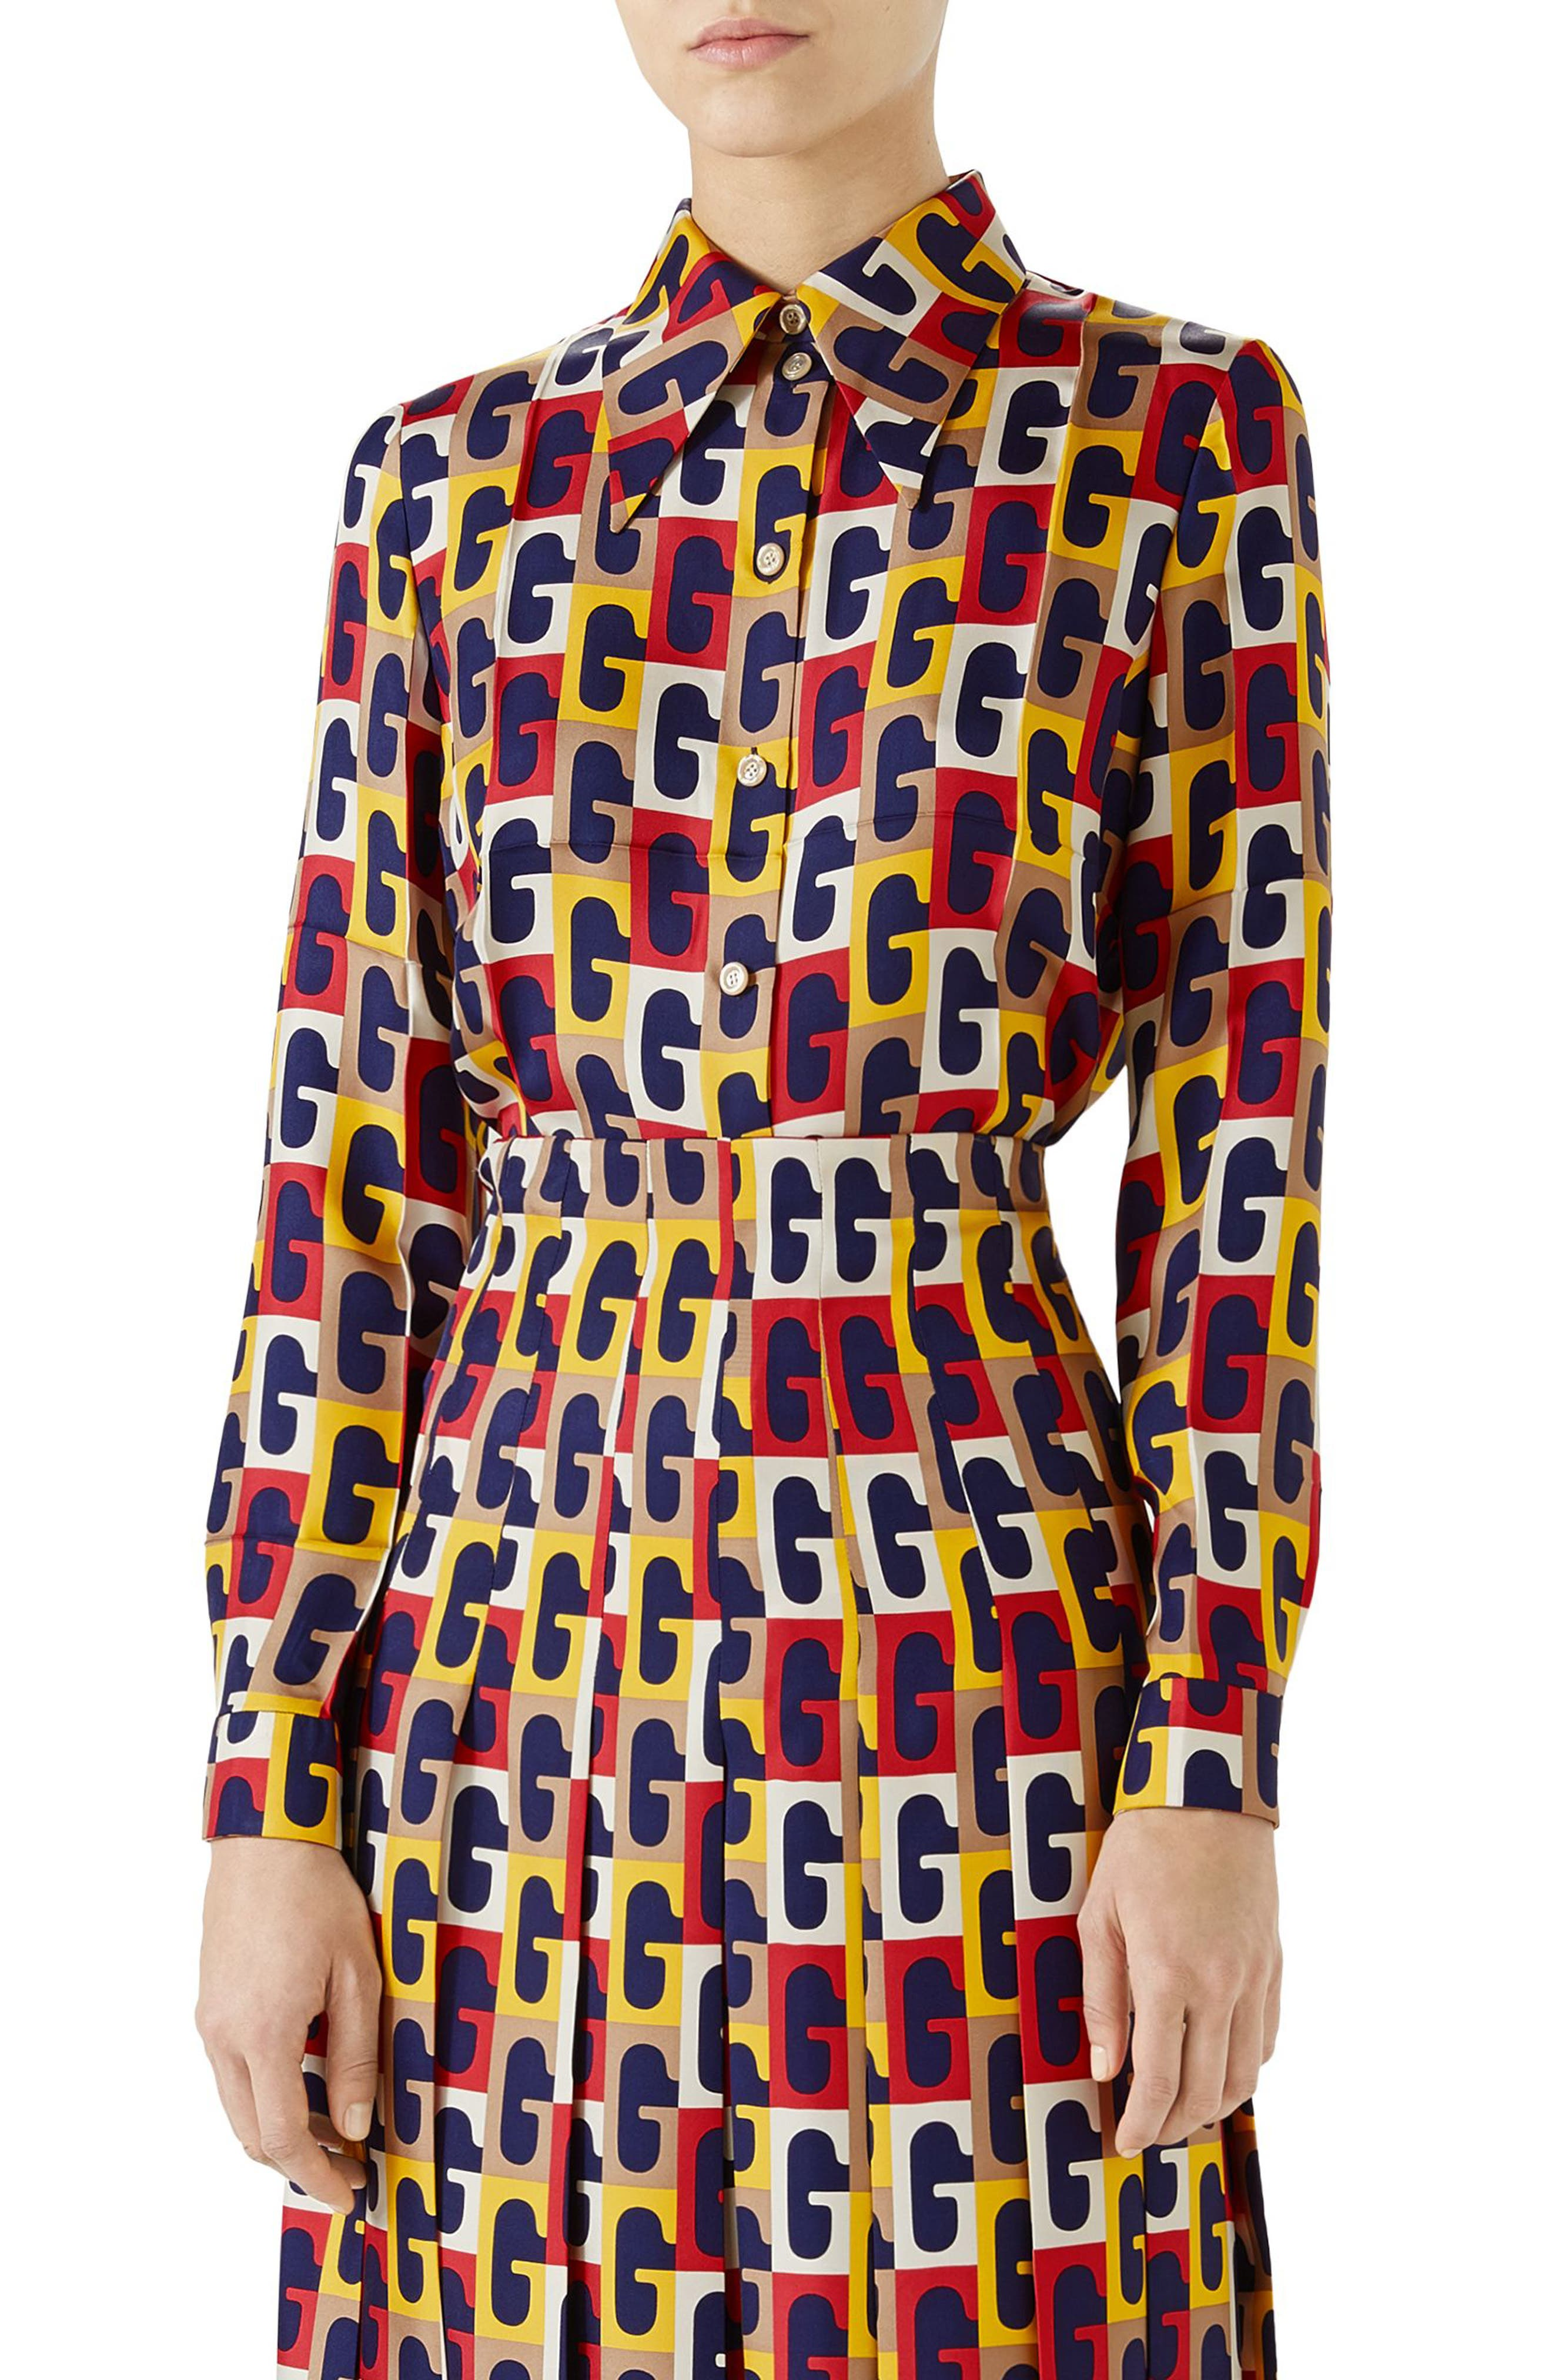 G-Sequence Print Silk Shirt,                         Main,                         color, Ivory/ Yellow/ Red Print